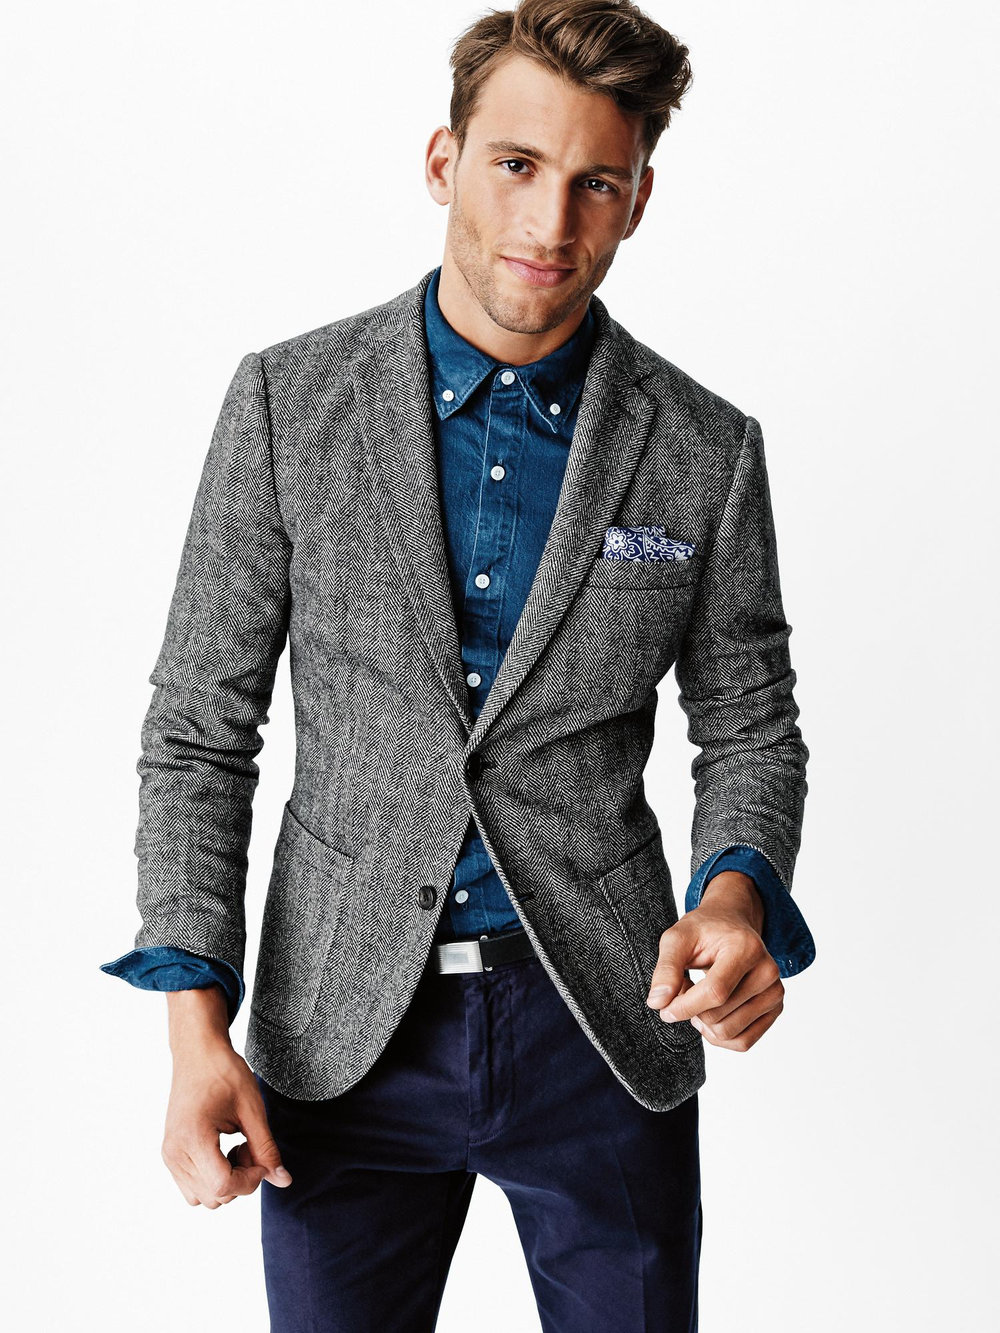 gap--gq-brooklyn-tailors-herringbone-blazer-product-1-24244088-5-907186747-normal.jpg